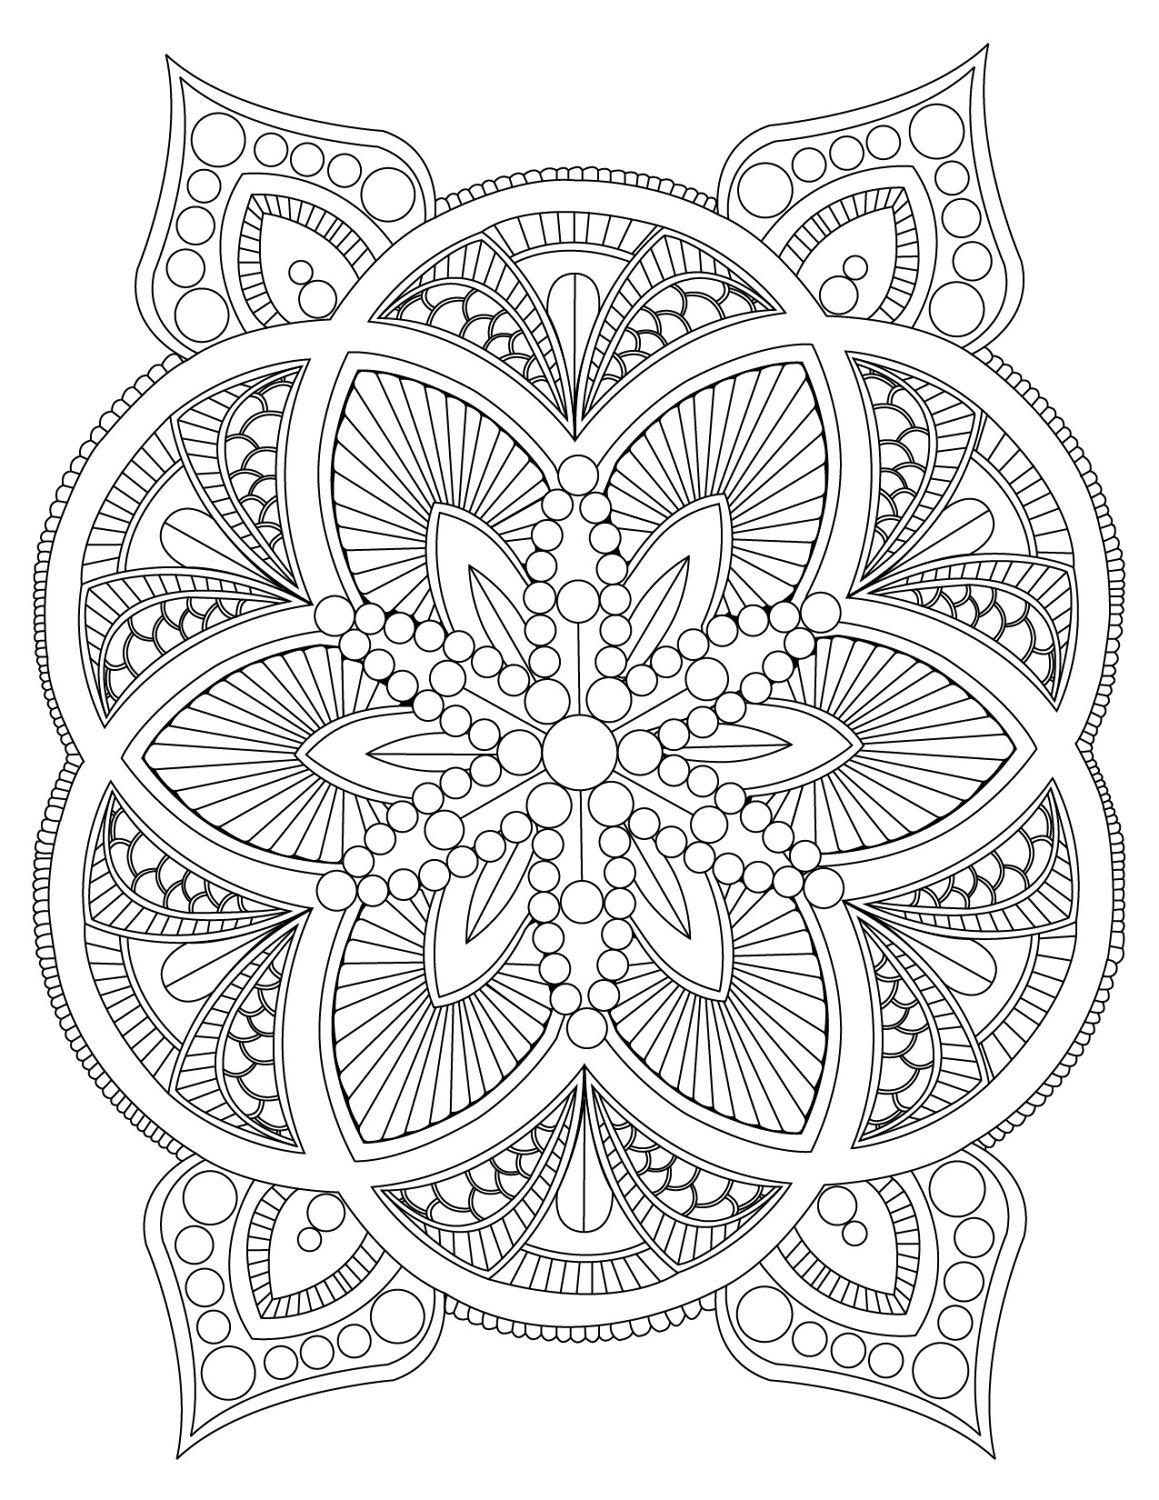 mandalas to color for adults mandala to download in pdf 1 malas adult coloring pages color for to adults mandalas